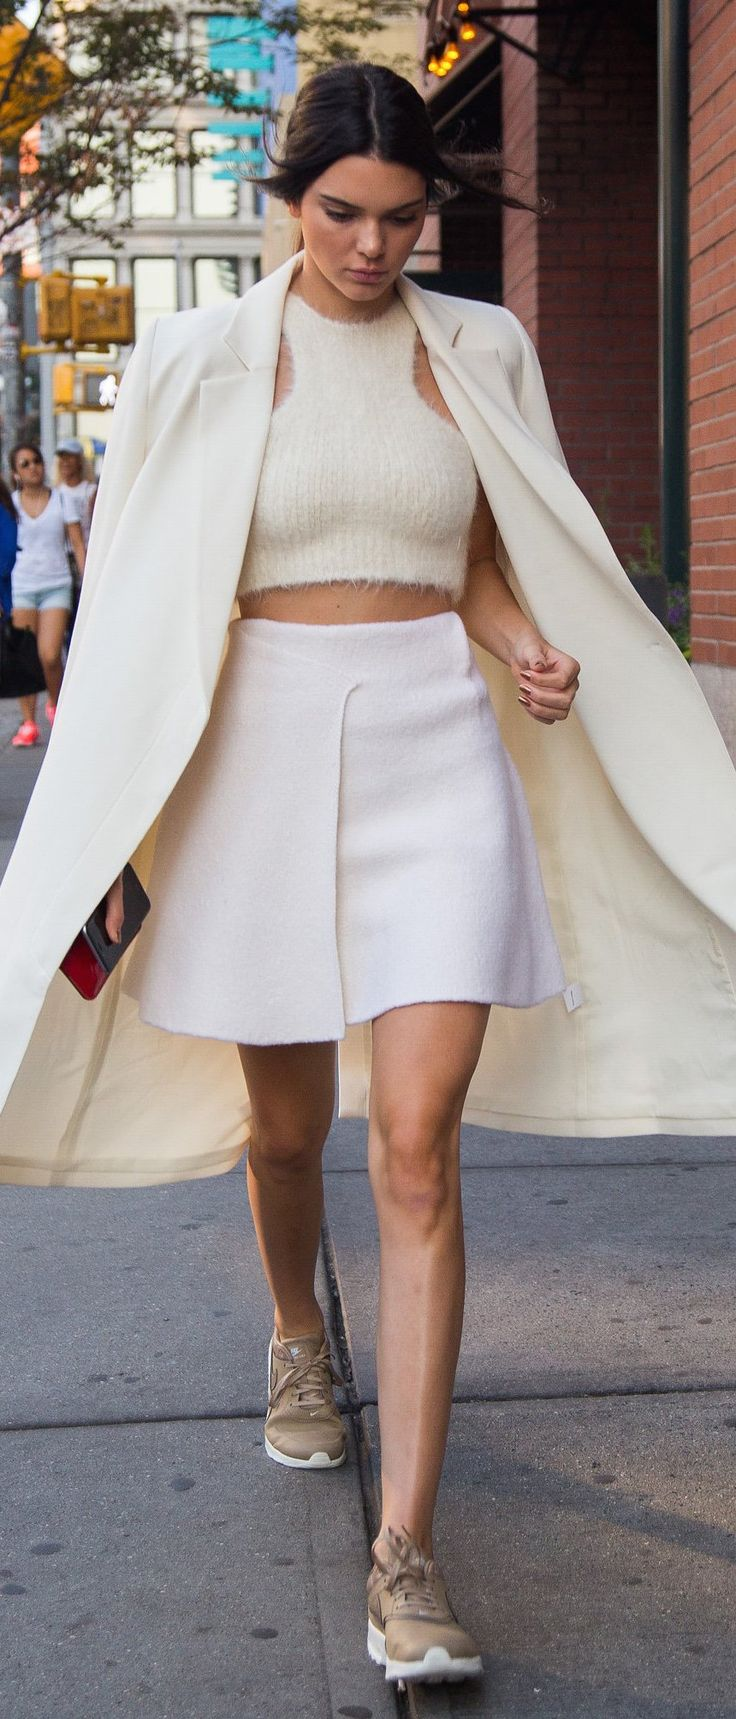 Kendall Jenner in a fuzzy crop top, a-line cream skirt, and sand-colored sneakers